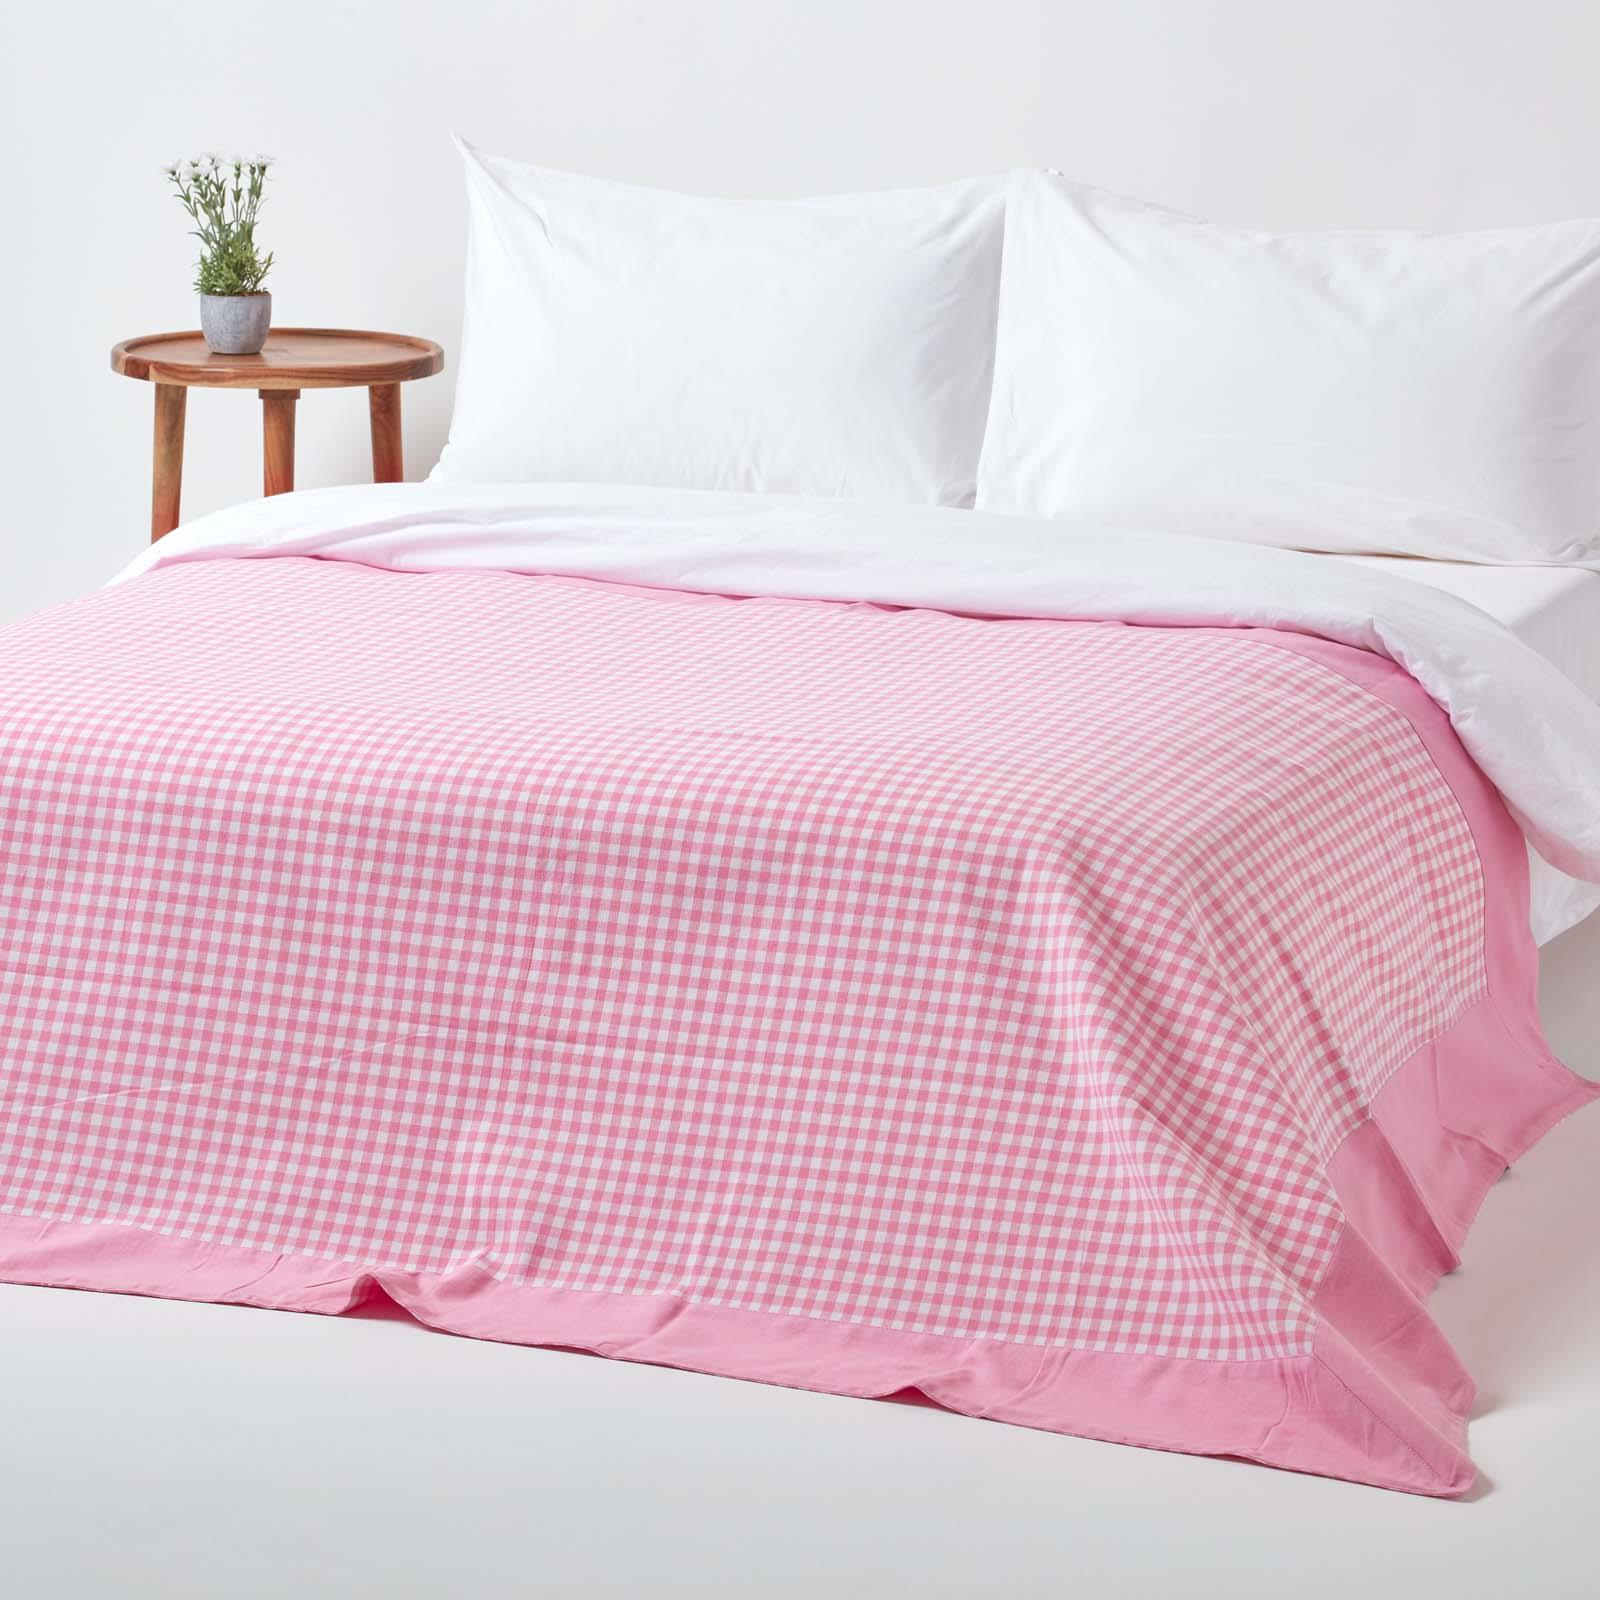 Gingham Check Extra Large Cotton Sofa Throw Bed Covers